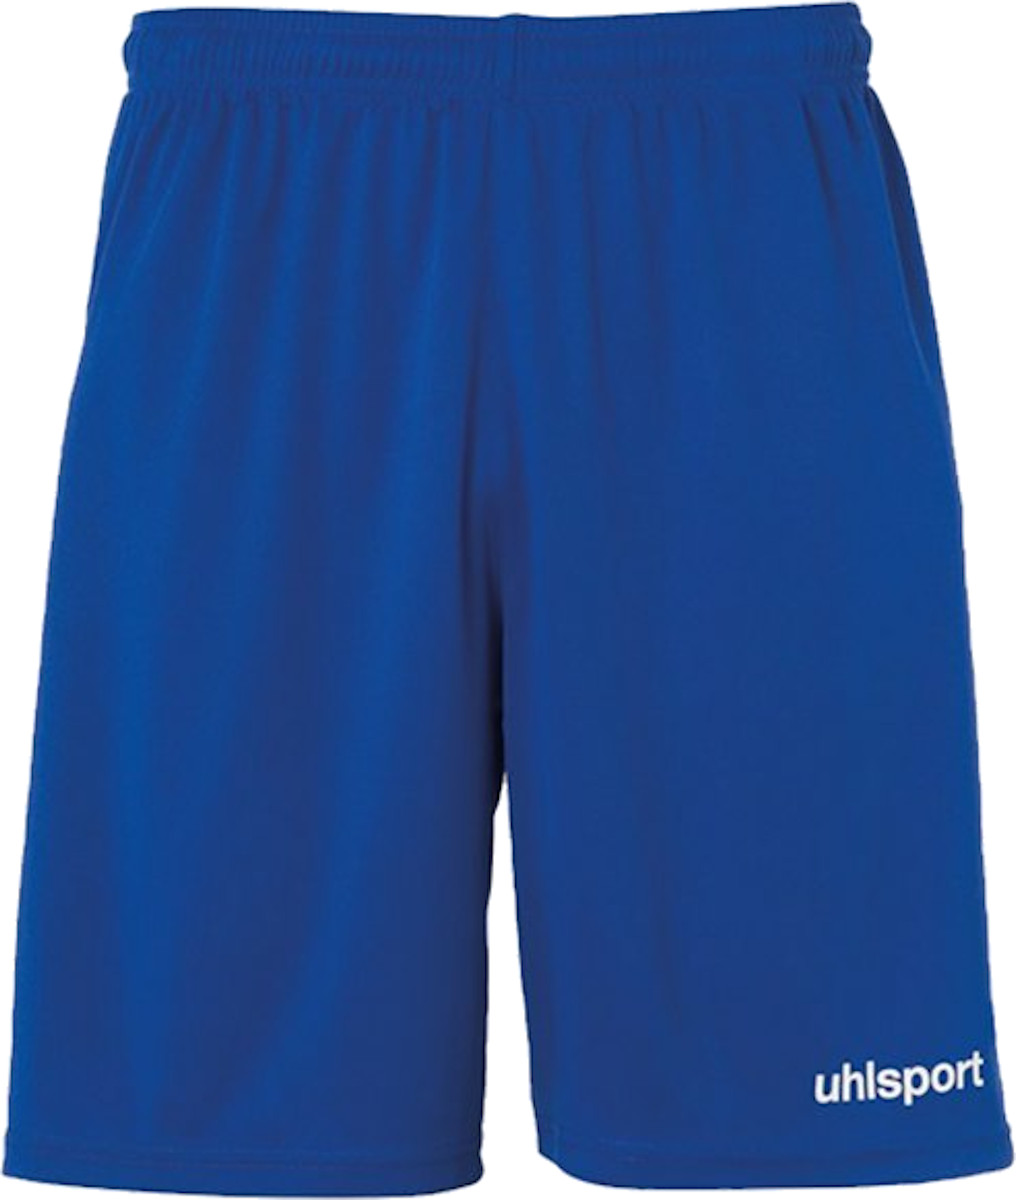 Sorturi Uhlsport Center Basic Short